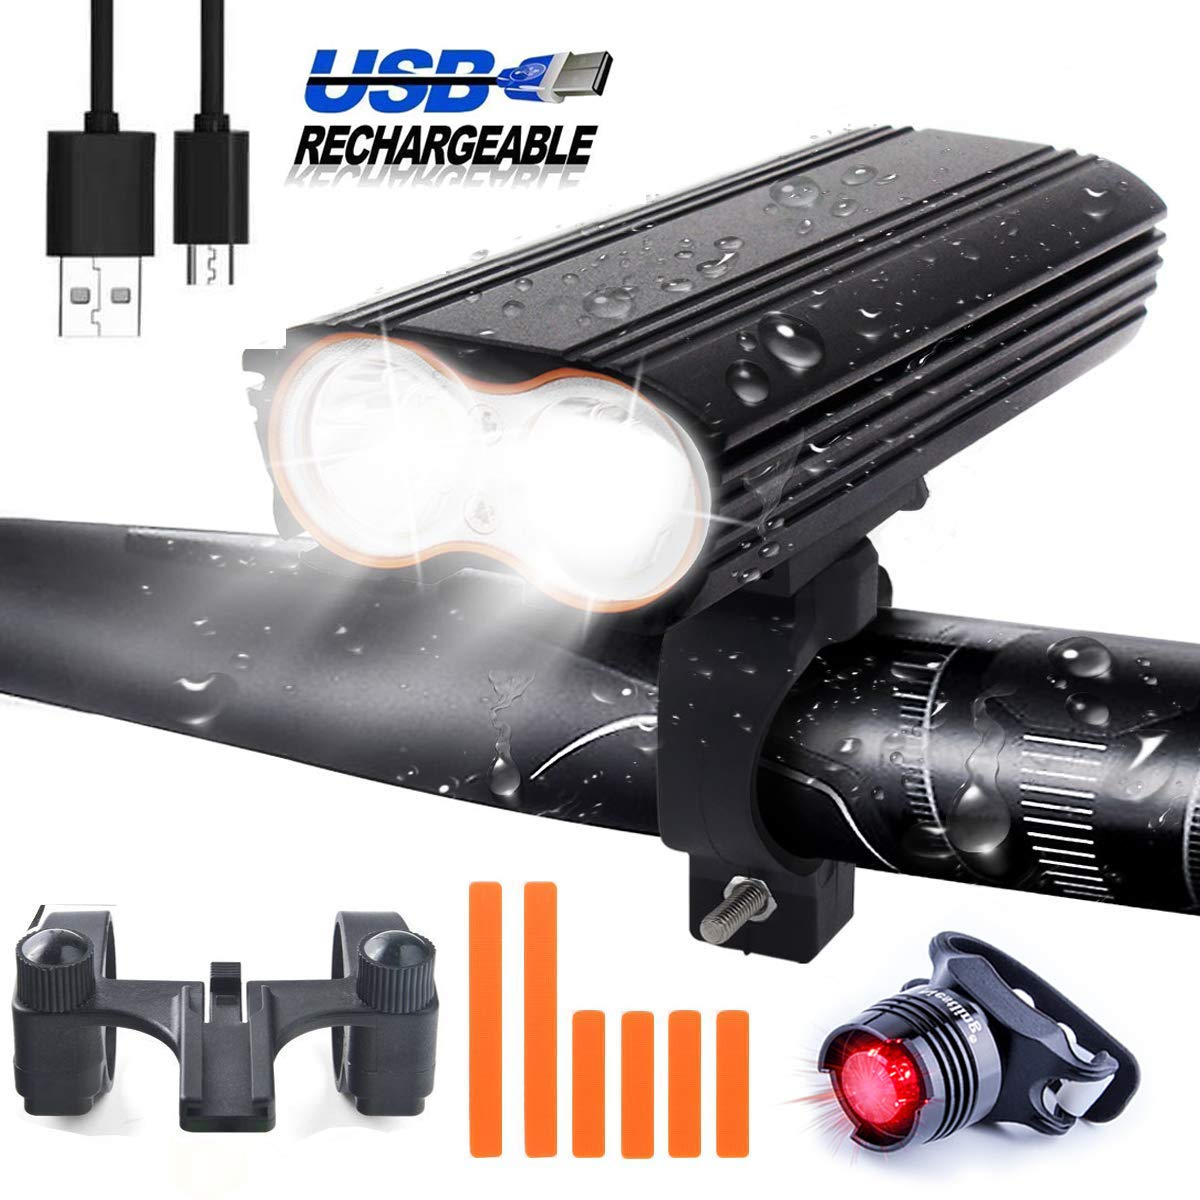 LED Bicycle Light Set, USB Rechargeable 2400 Lumens 4 Light Modes LED Bike Lights Set, Bike Lamp Set incl, LED Front Light Taillight and with Detachable Buckle, Cycling Camping Outdoor Sport, IP65 Waterproof